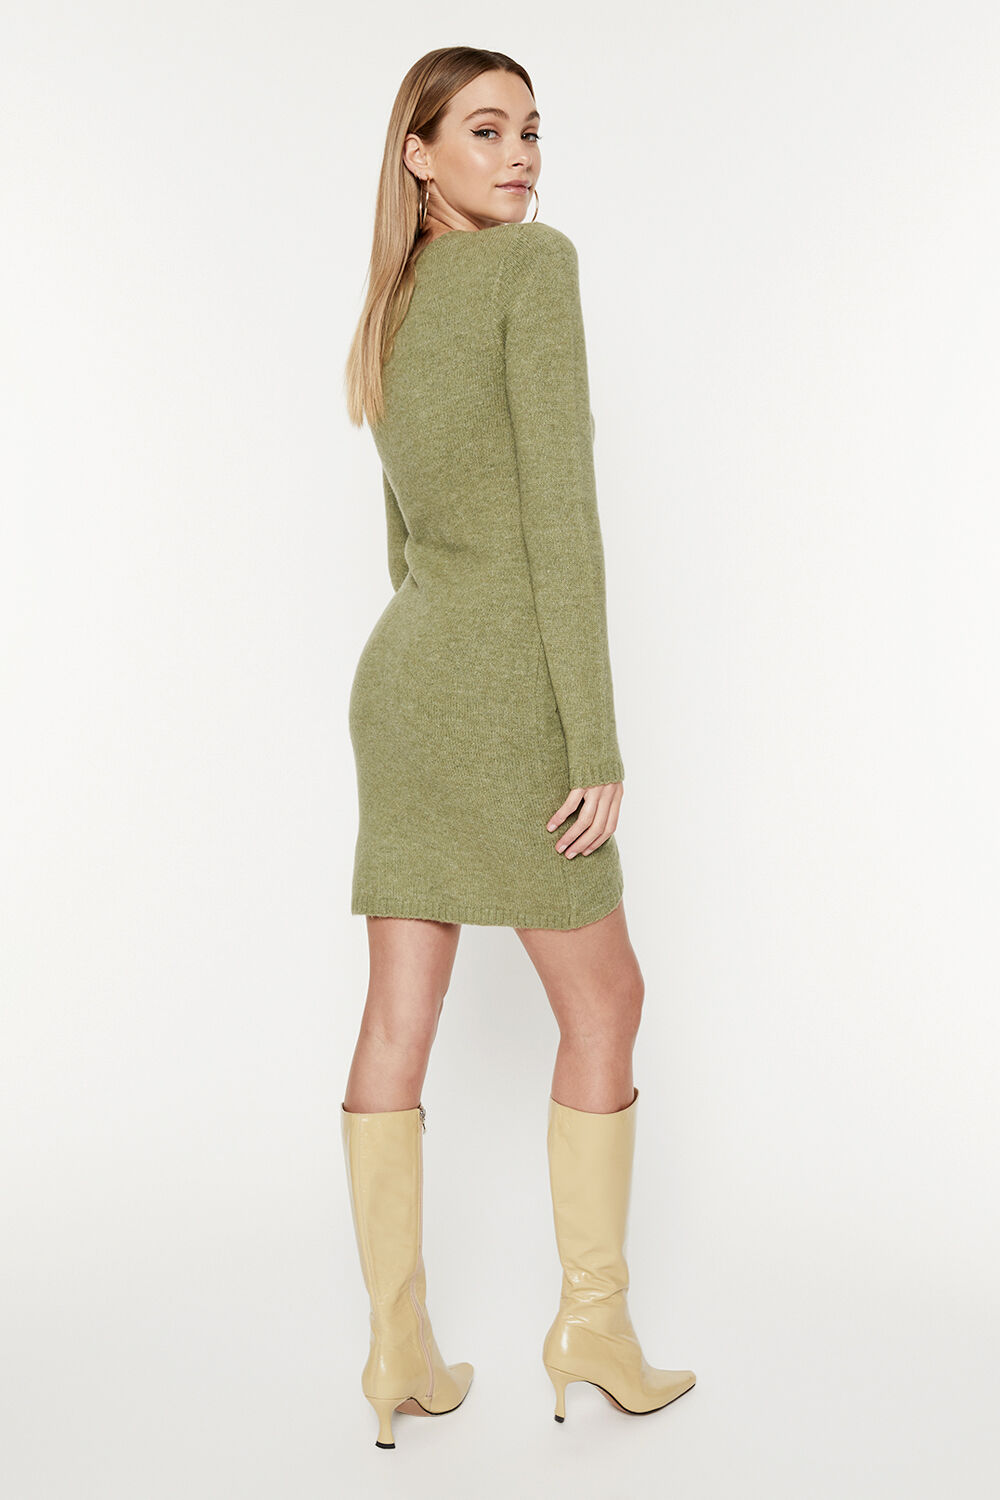 EVIE MINI KNIT DRESS in colour IVY GREEN